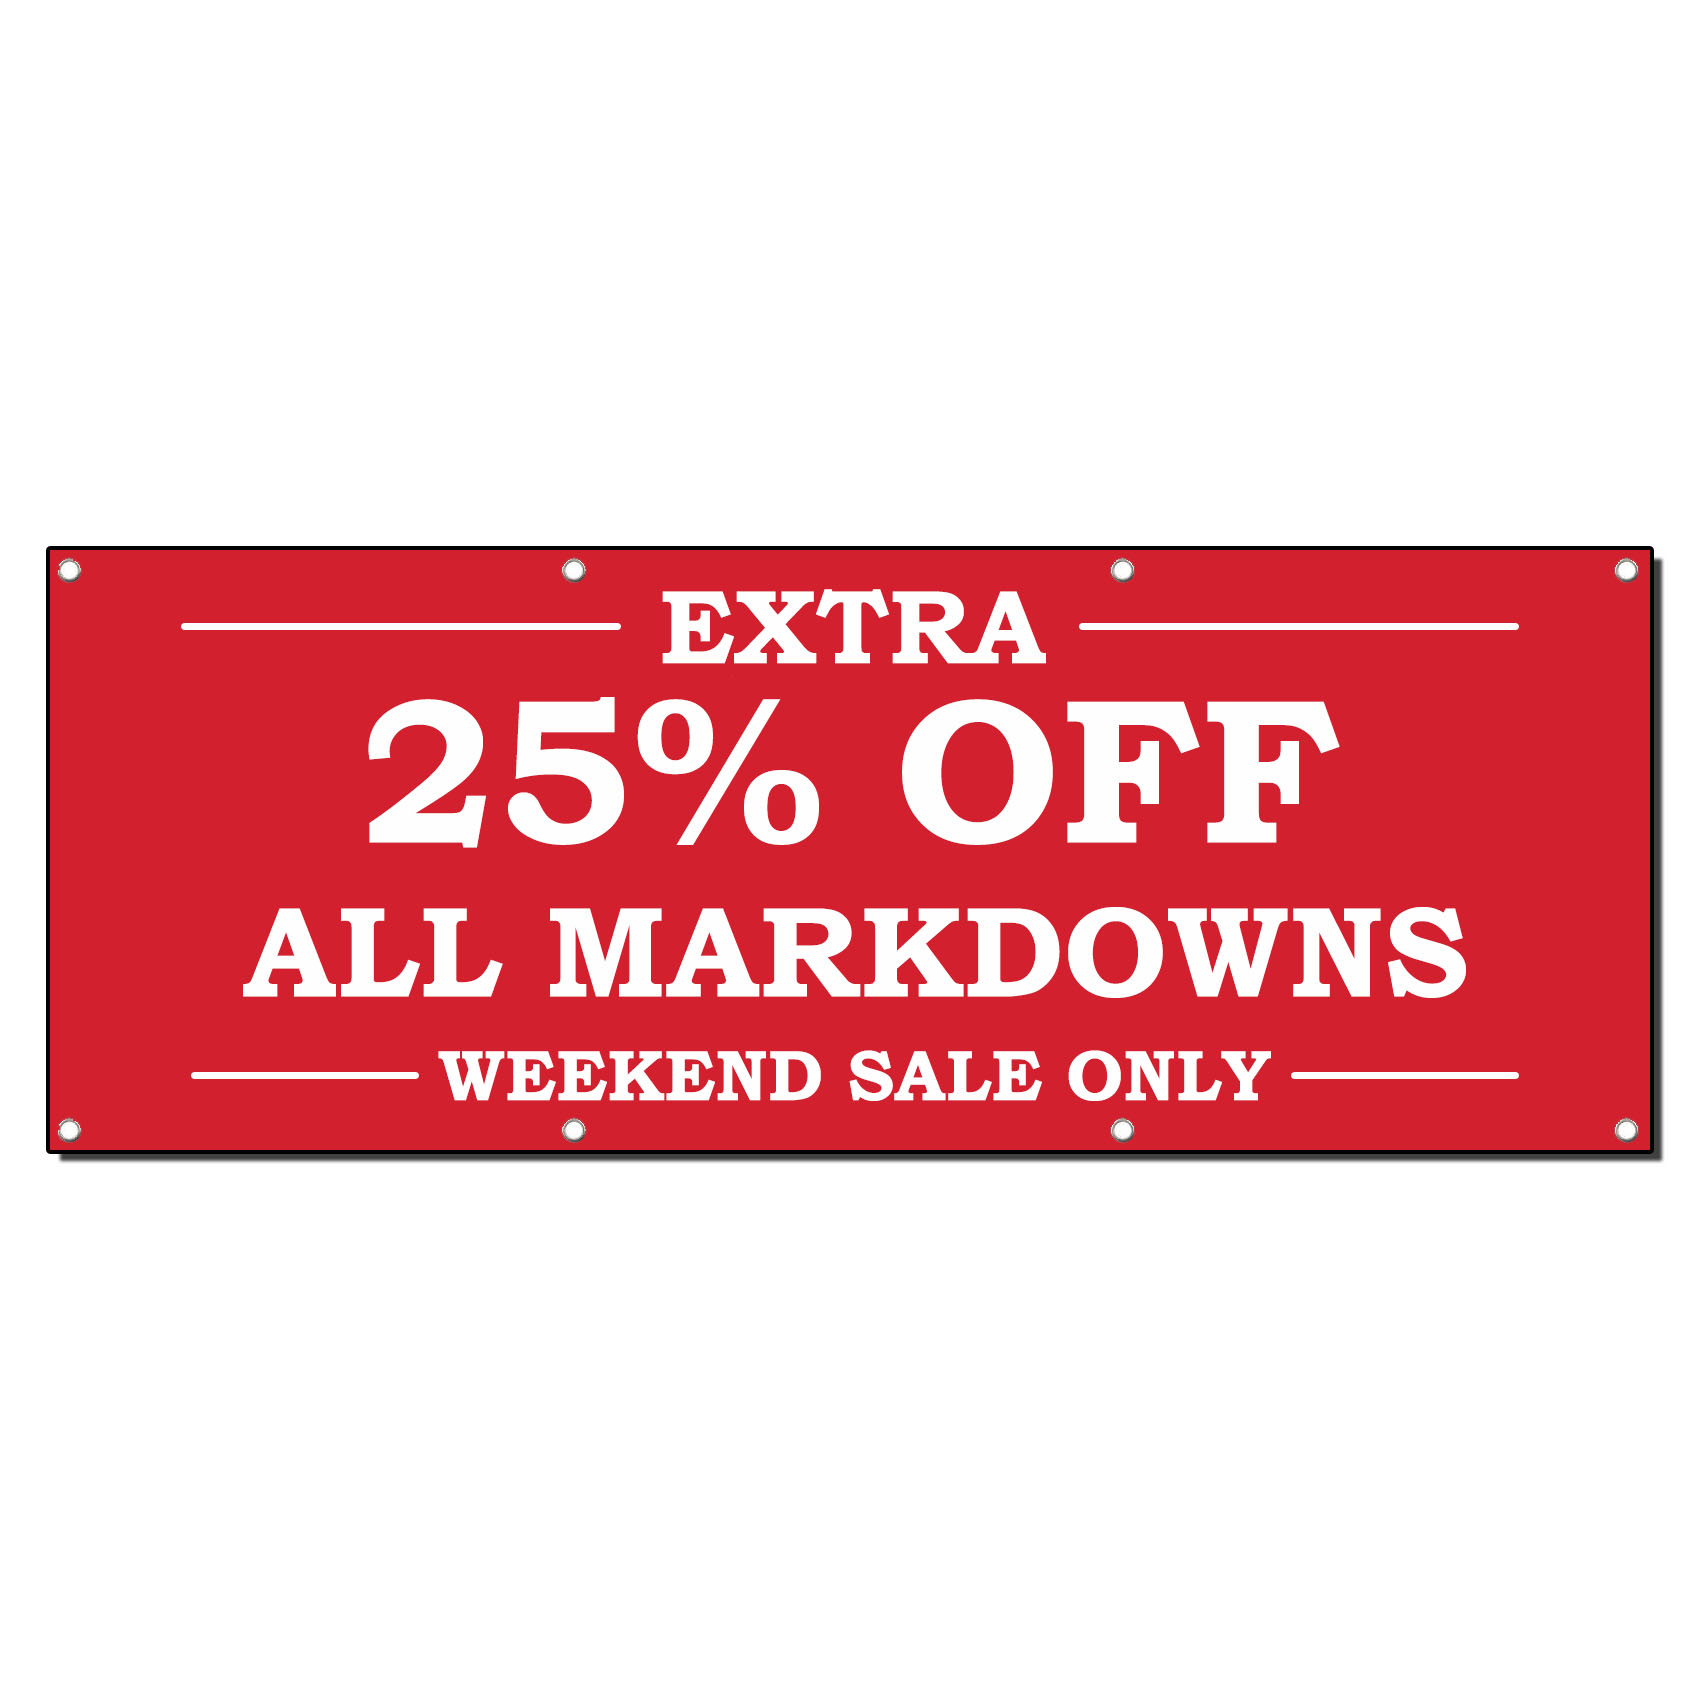 Weekend Sale Banner: EXTRA 25% OFF ALL MARKDOWNS WEEKEND SALE 13oz Vinyl Banner